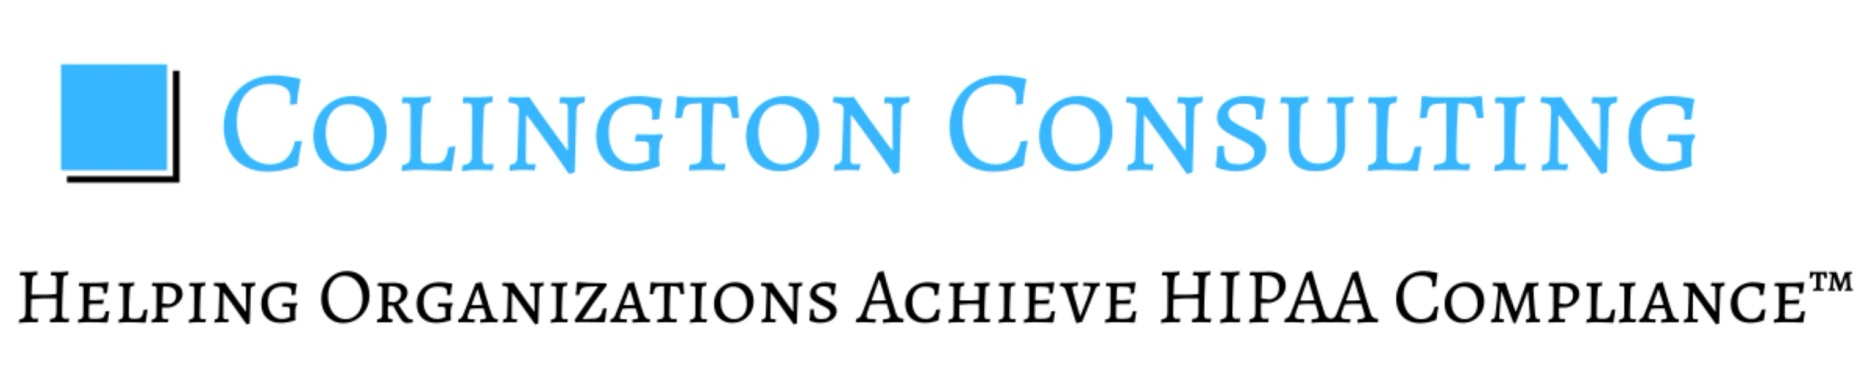 Colington Consulting  Helping Organizations Achieve HIPAA Complia